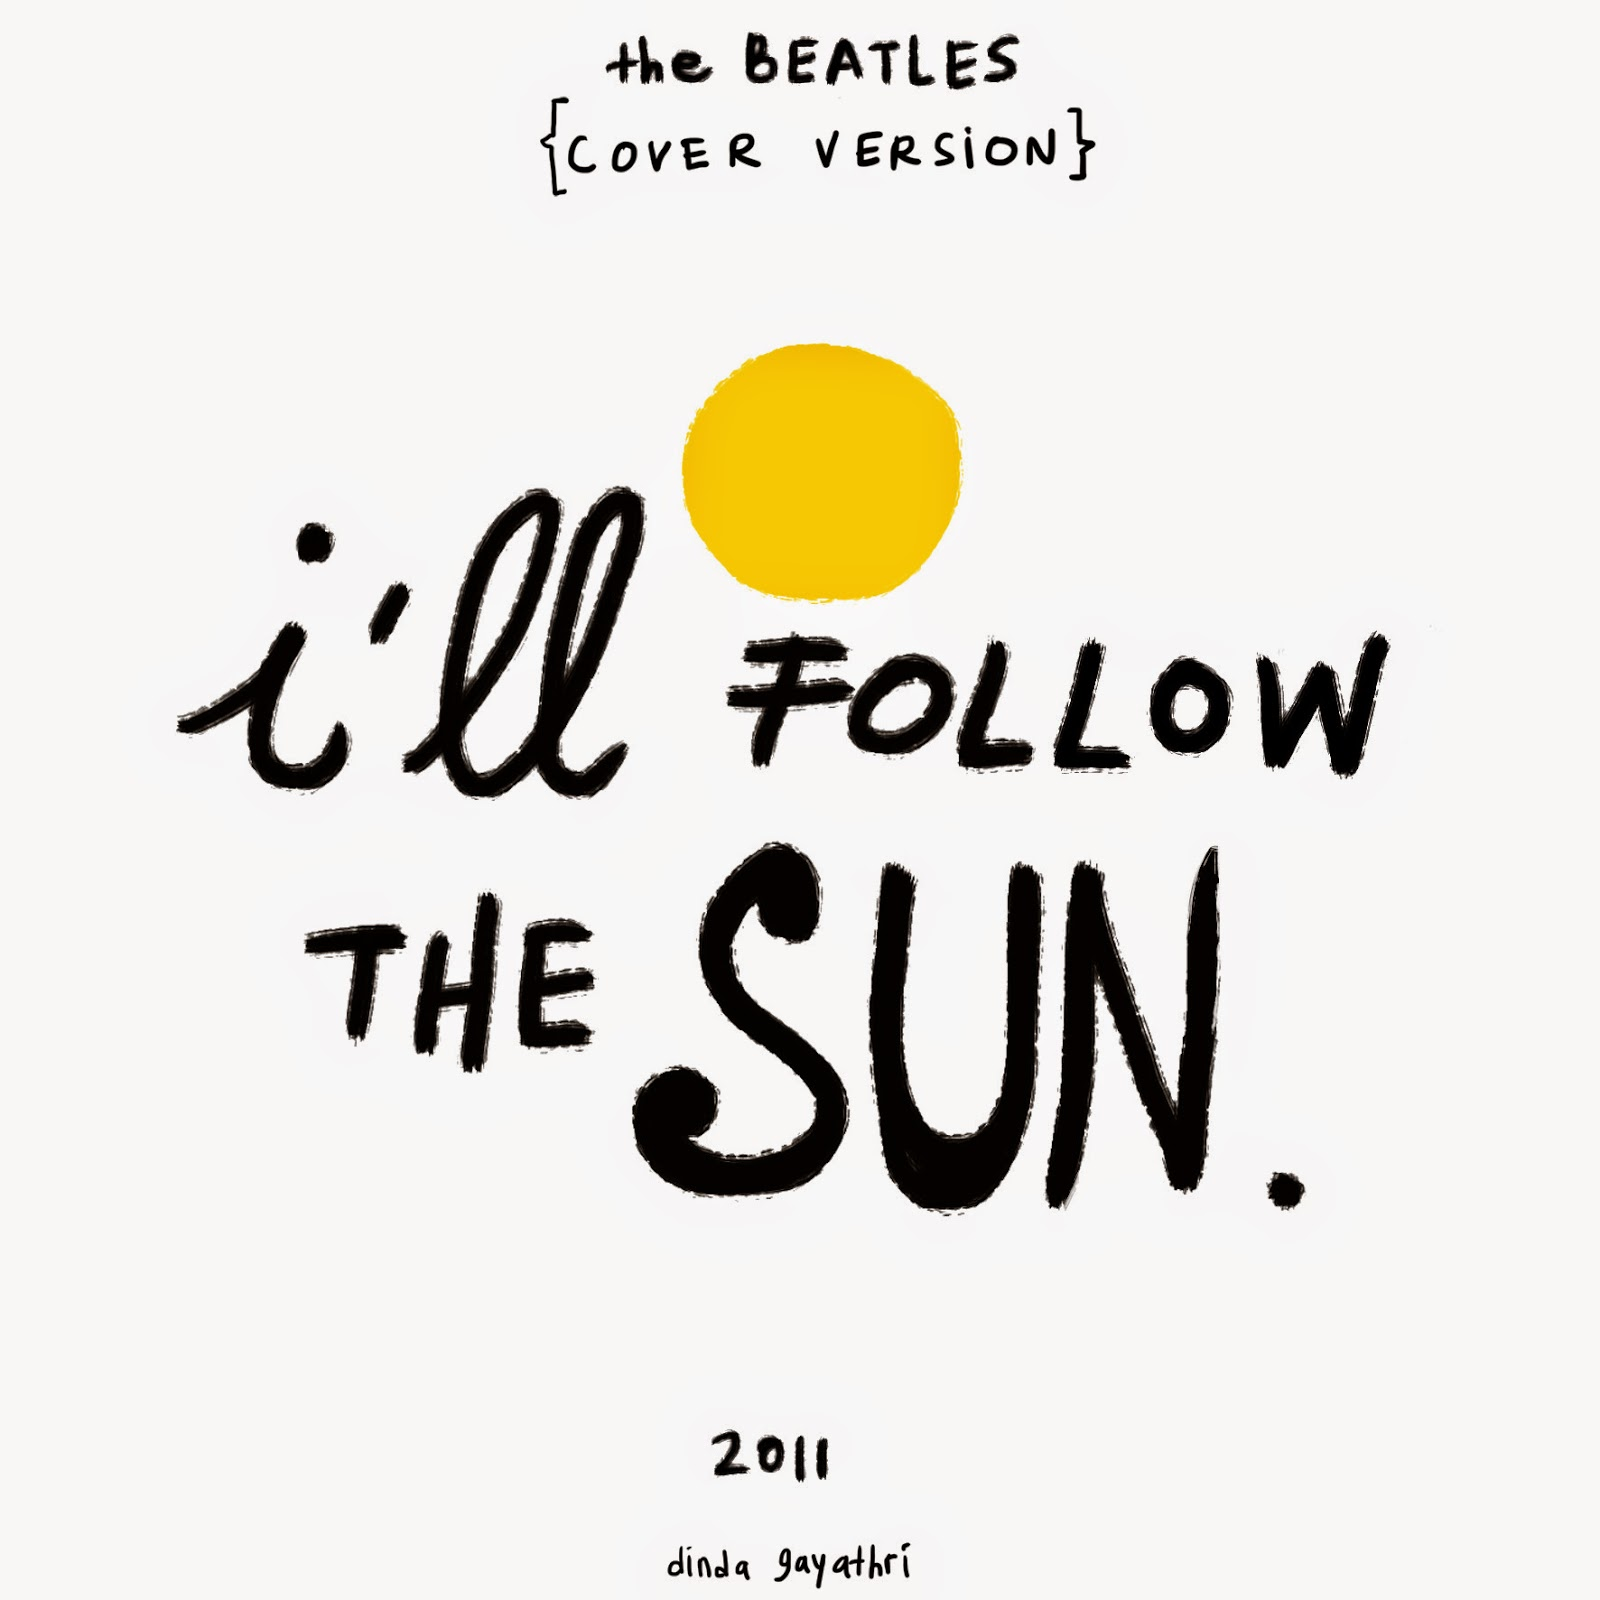 https://soundcloud.com/halodinda/ill-follow-the-sun-beatles